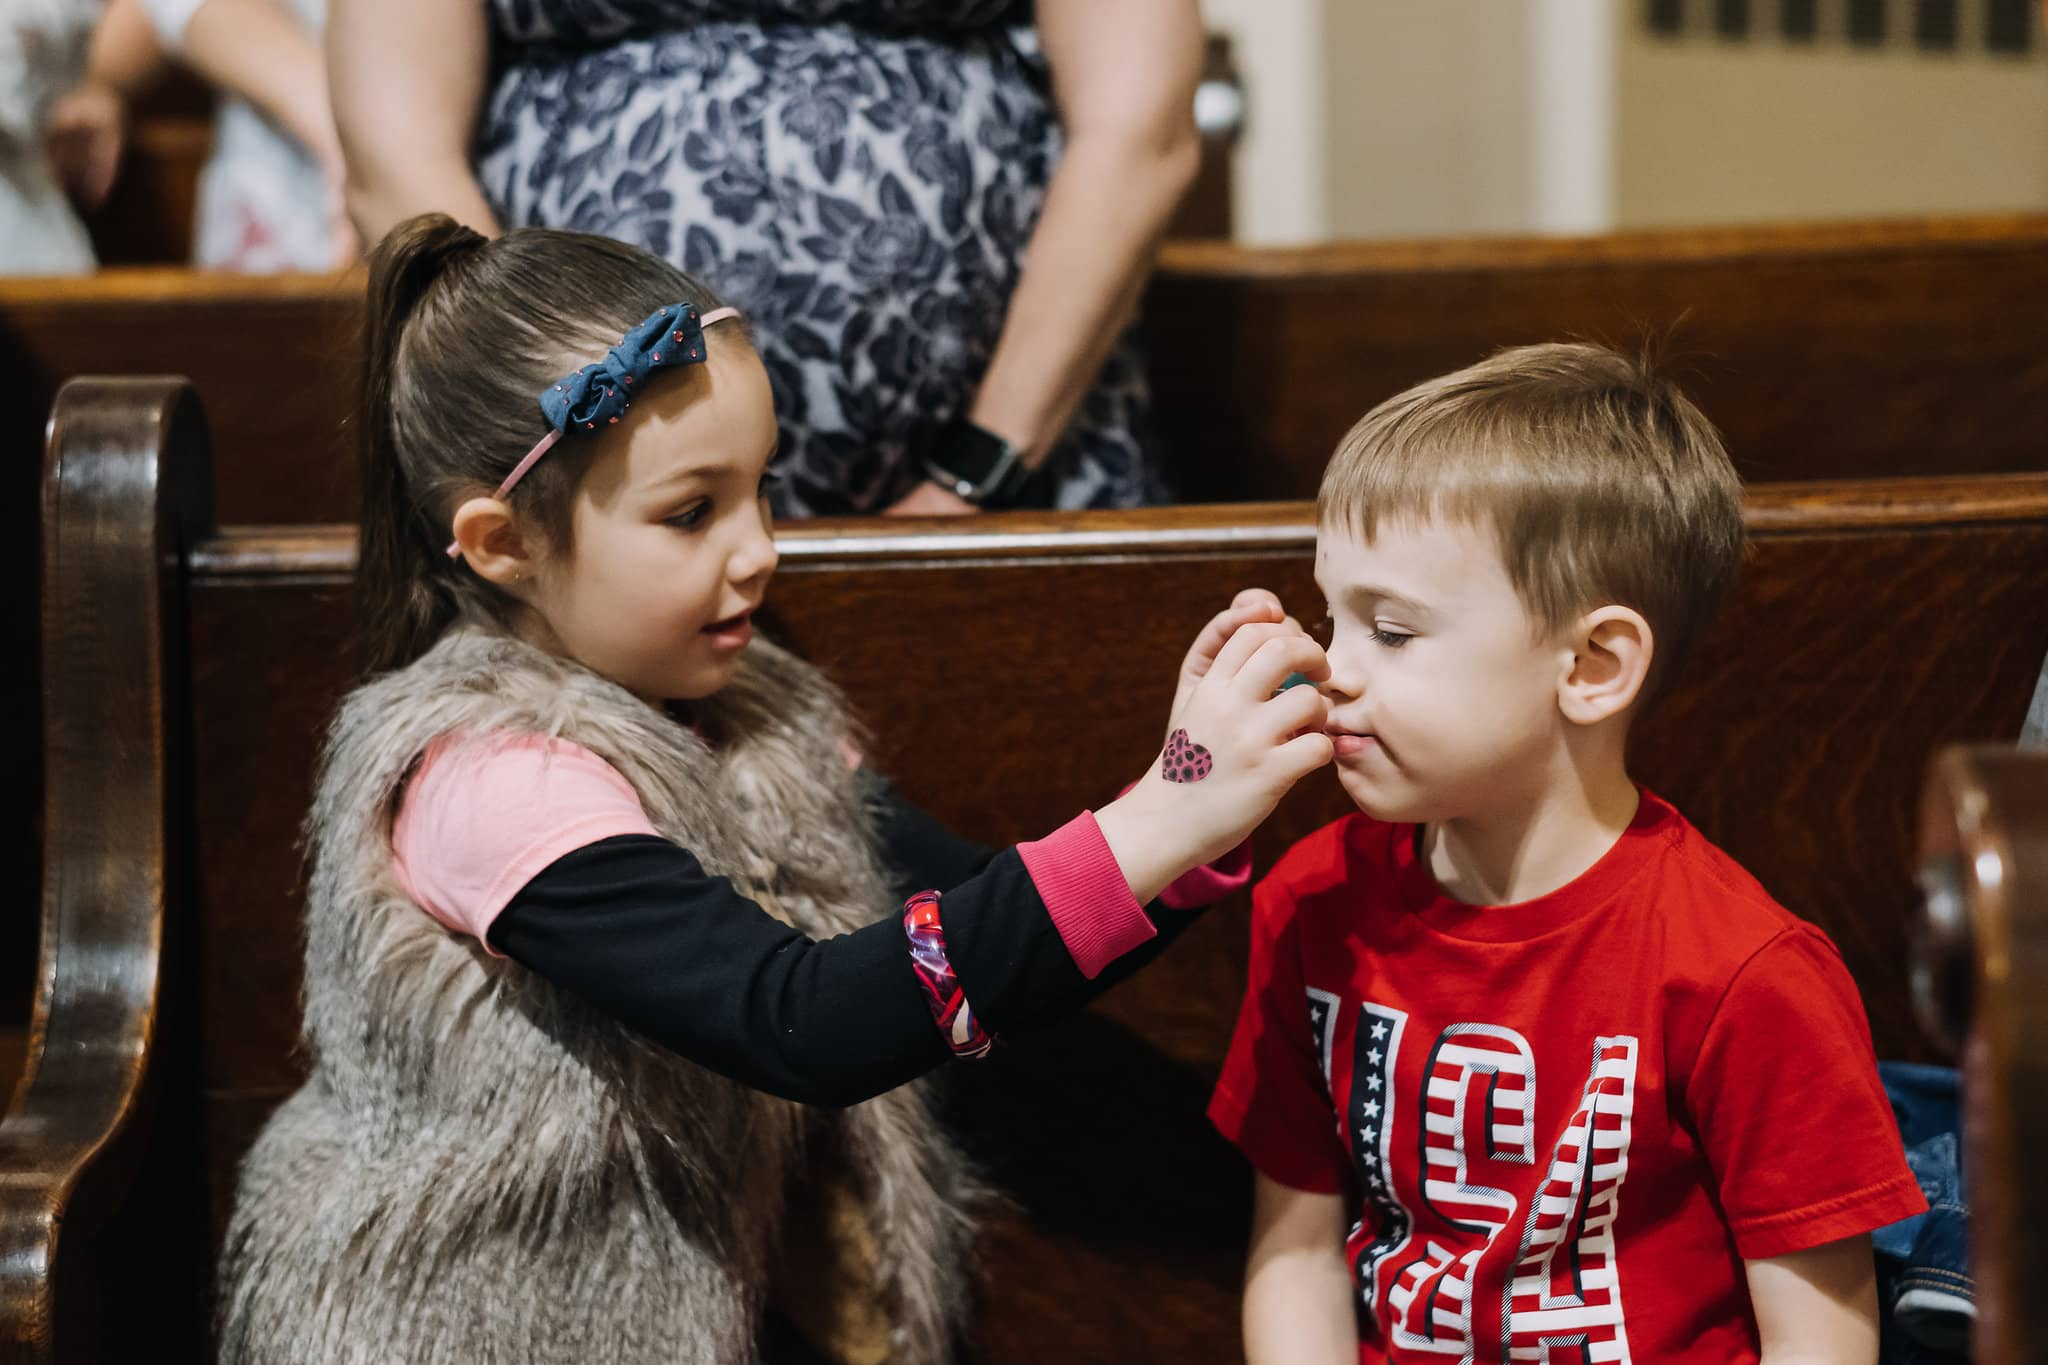 kids-youth-family-community-st-francis-de-sales-church-new-york-city.jpg